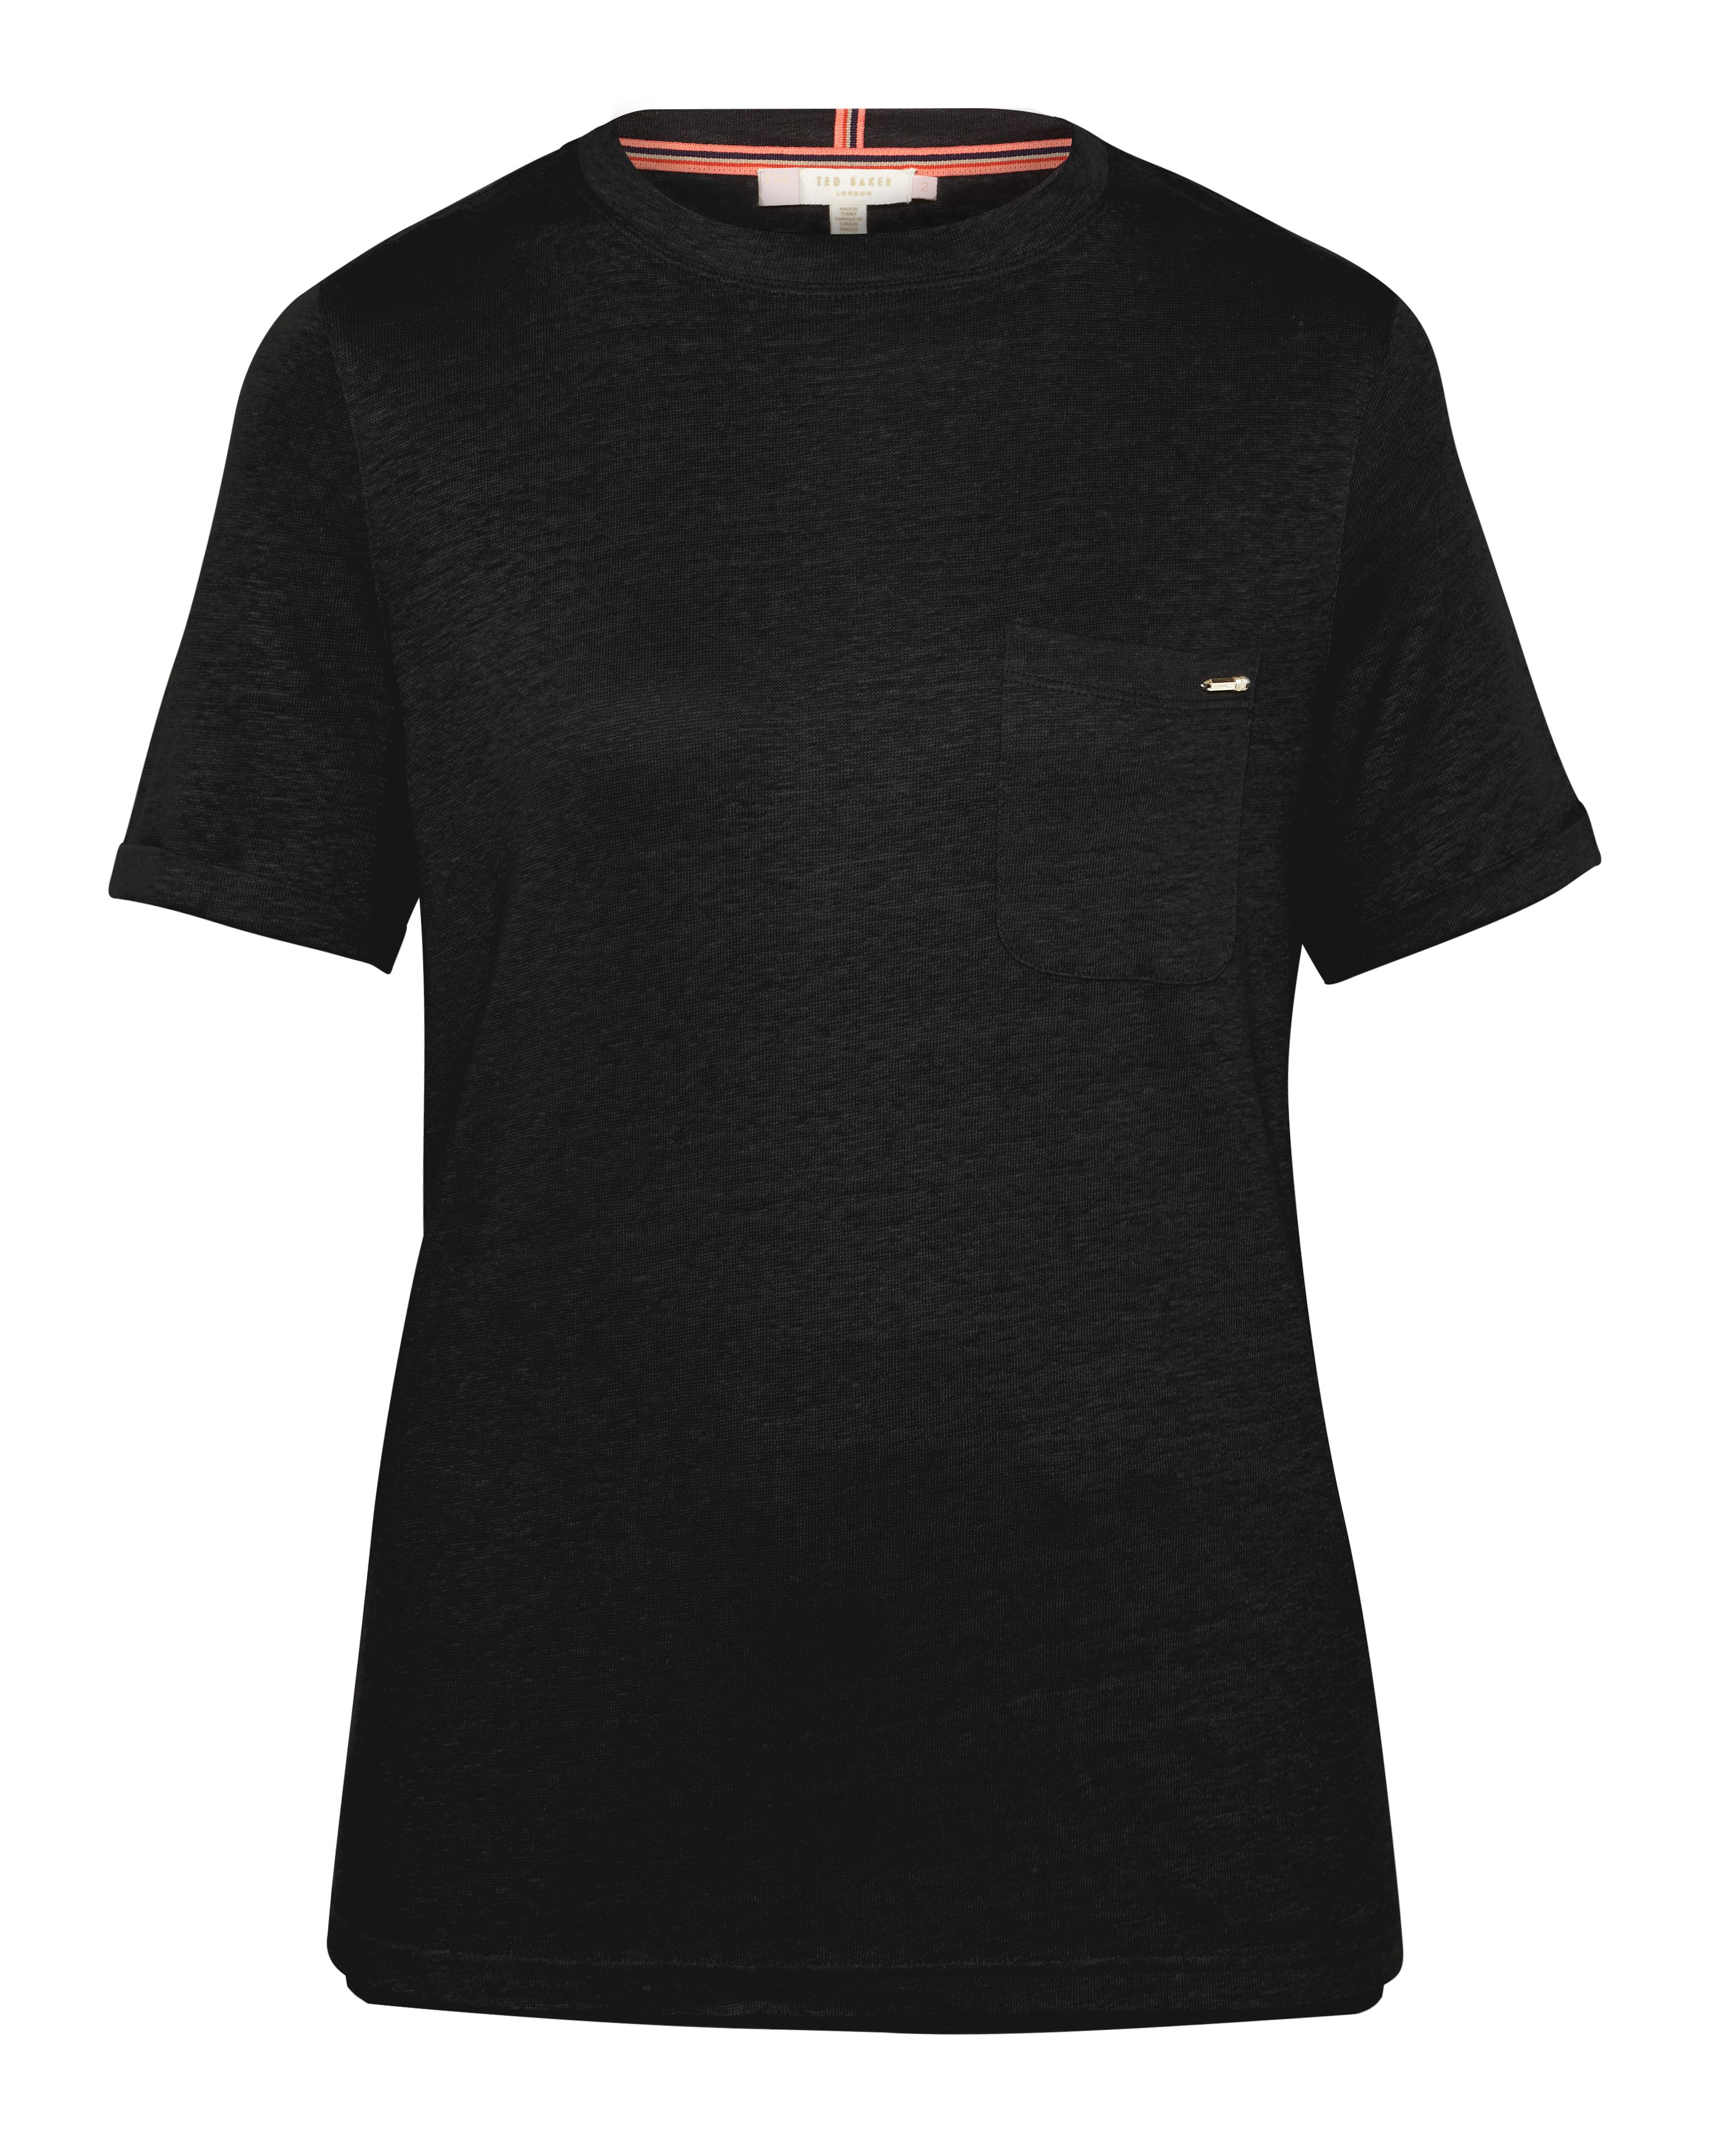 Ted Baker Harlaa Square Cut Linen TShirt Black